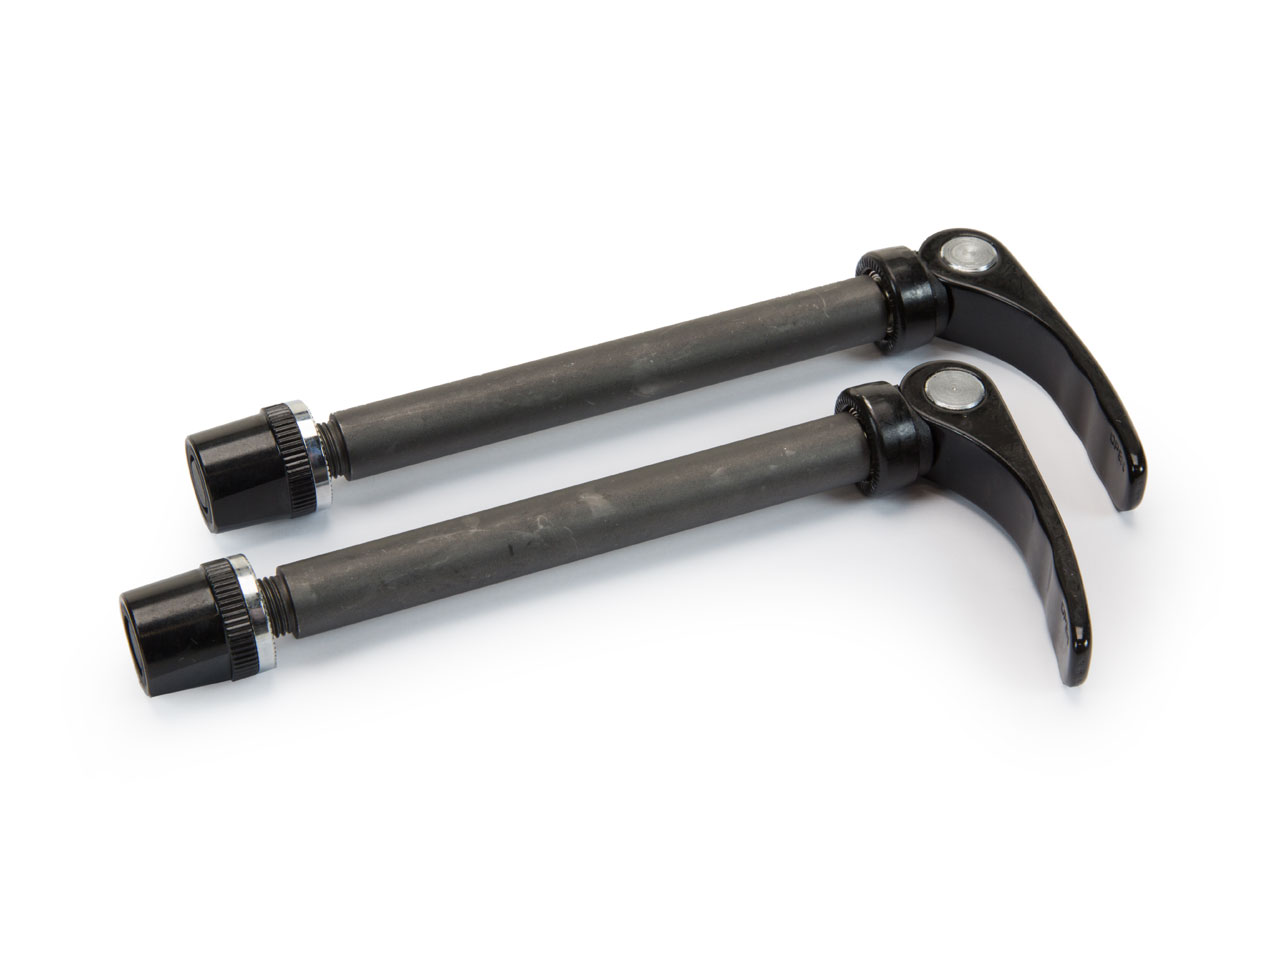 Black, quick release axels to remove your ICE trike's front wheels quickly